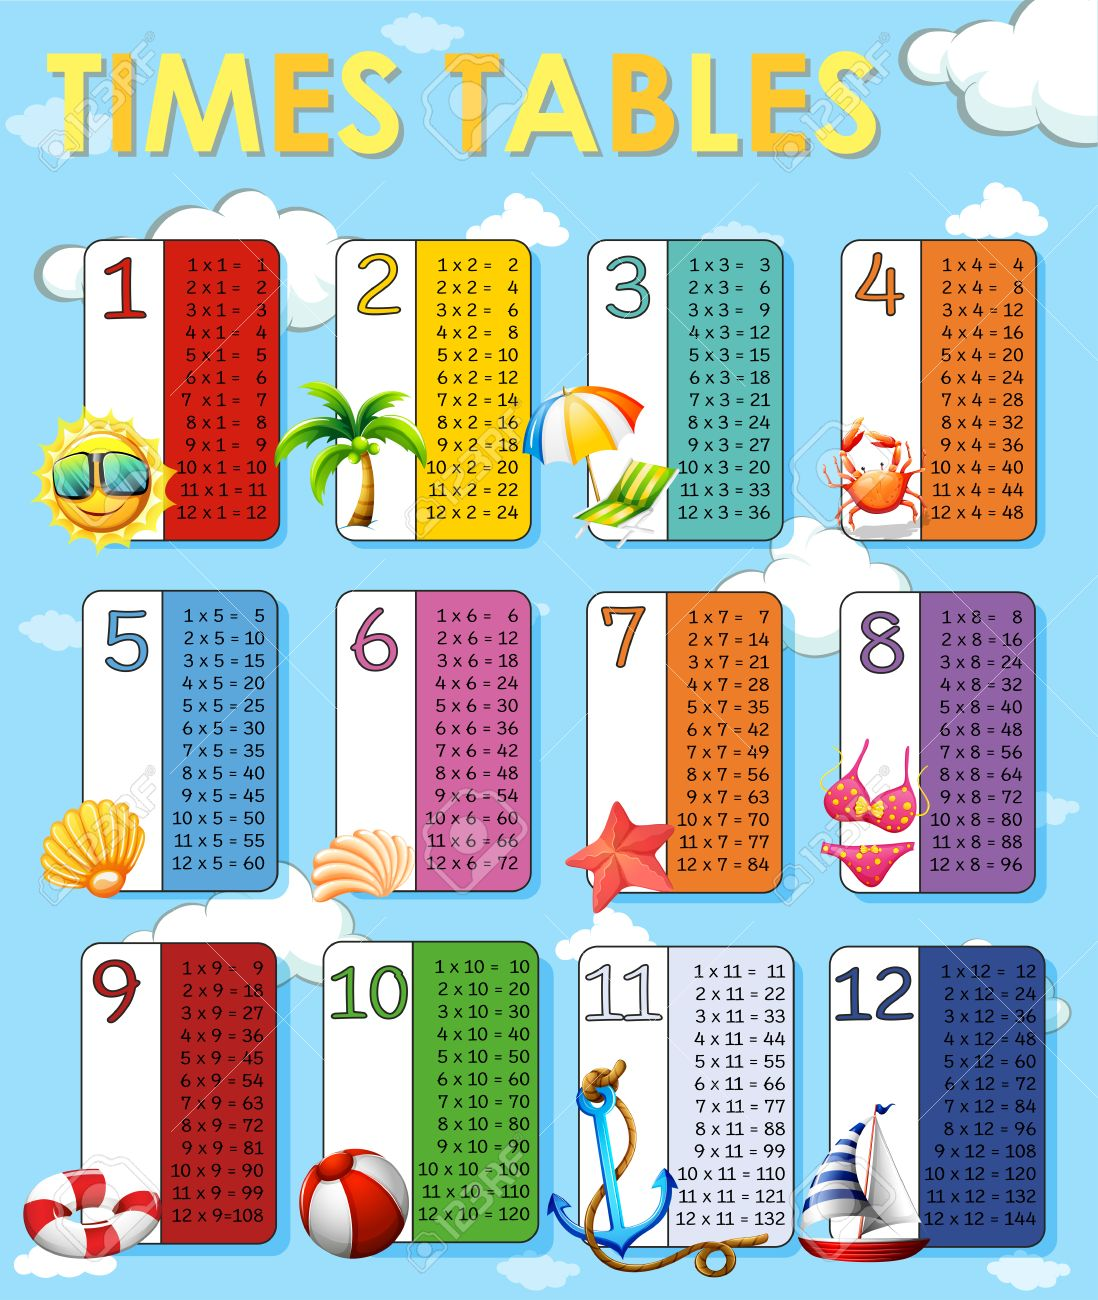 268 Times Tables Stock Illustrations, Cliparts And Royalty Free.